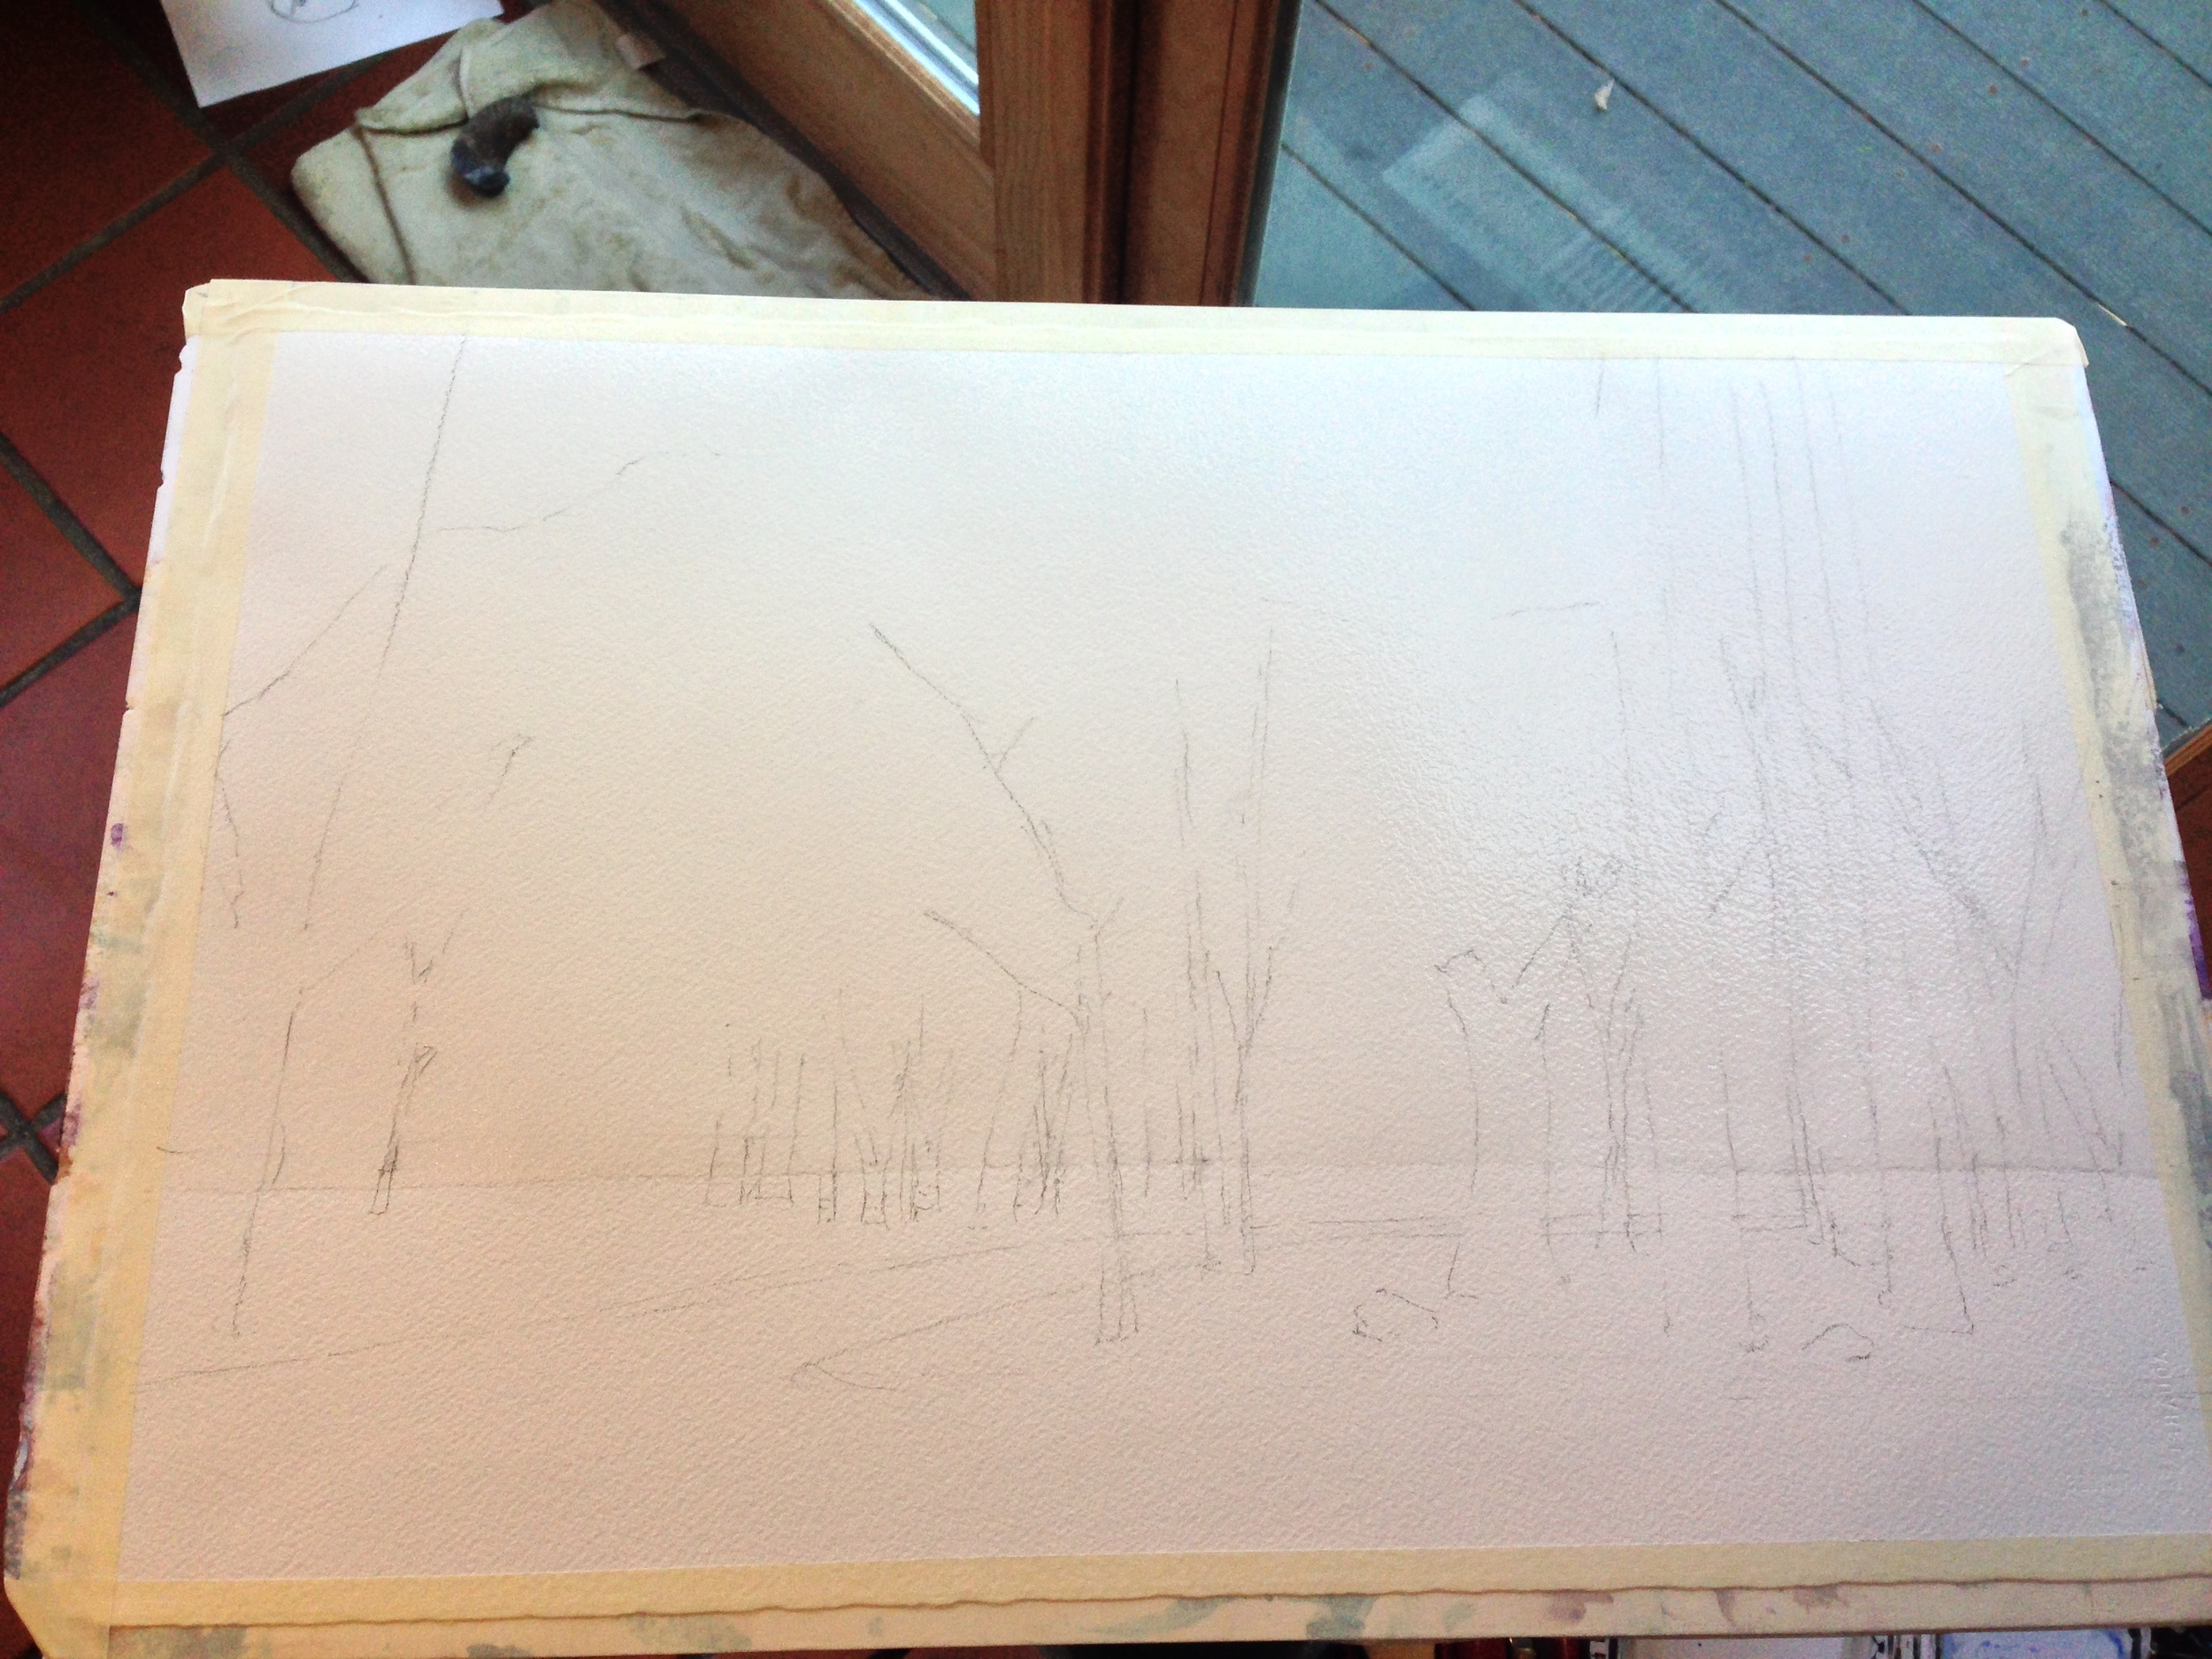 My sketch. You can see the wash of water i did down to the horizon.